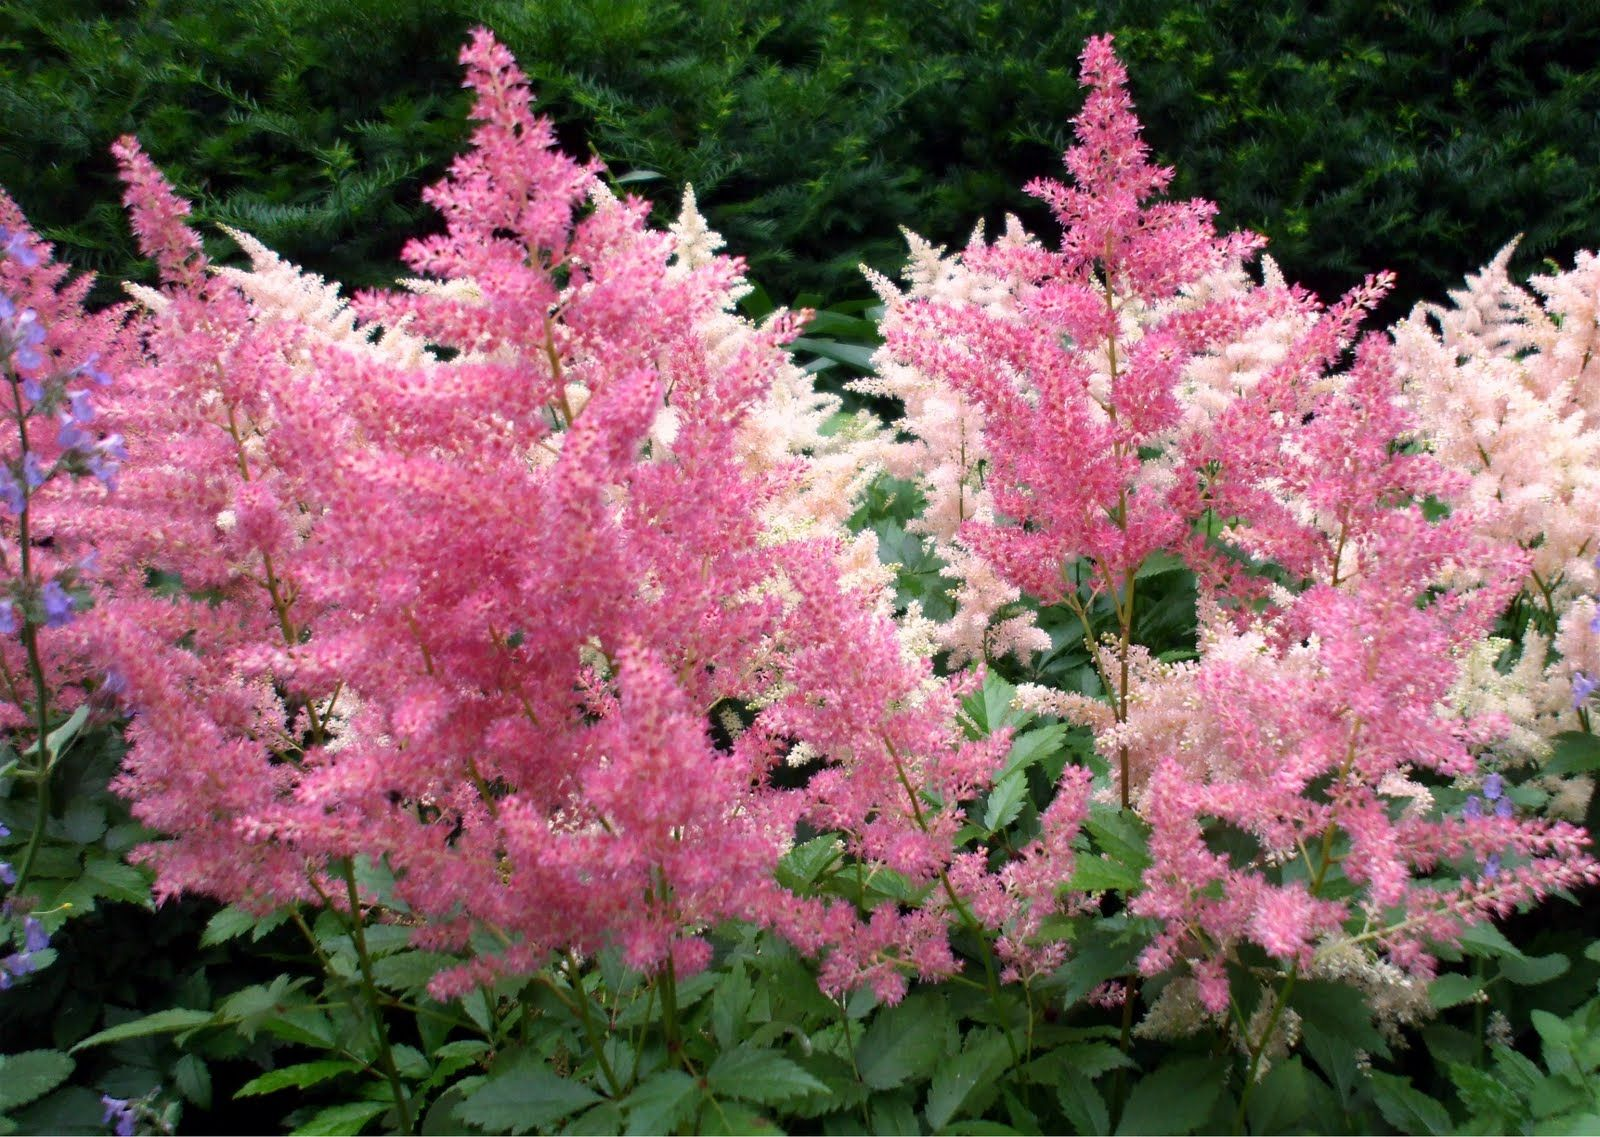 Pin By Vikka Hawl On Touched By The Blossom Astilbe Astilbe Flower White Flower Farm